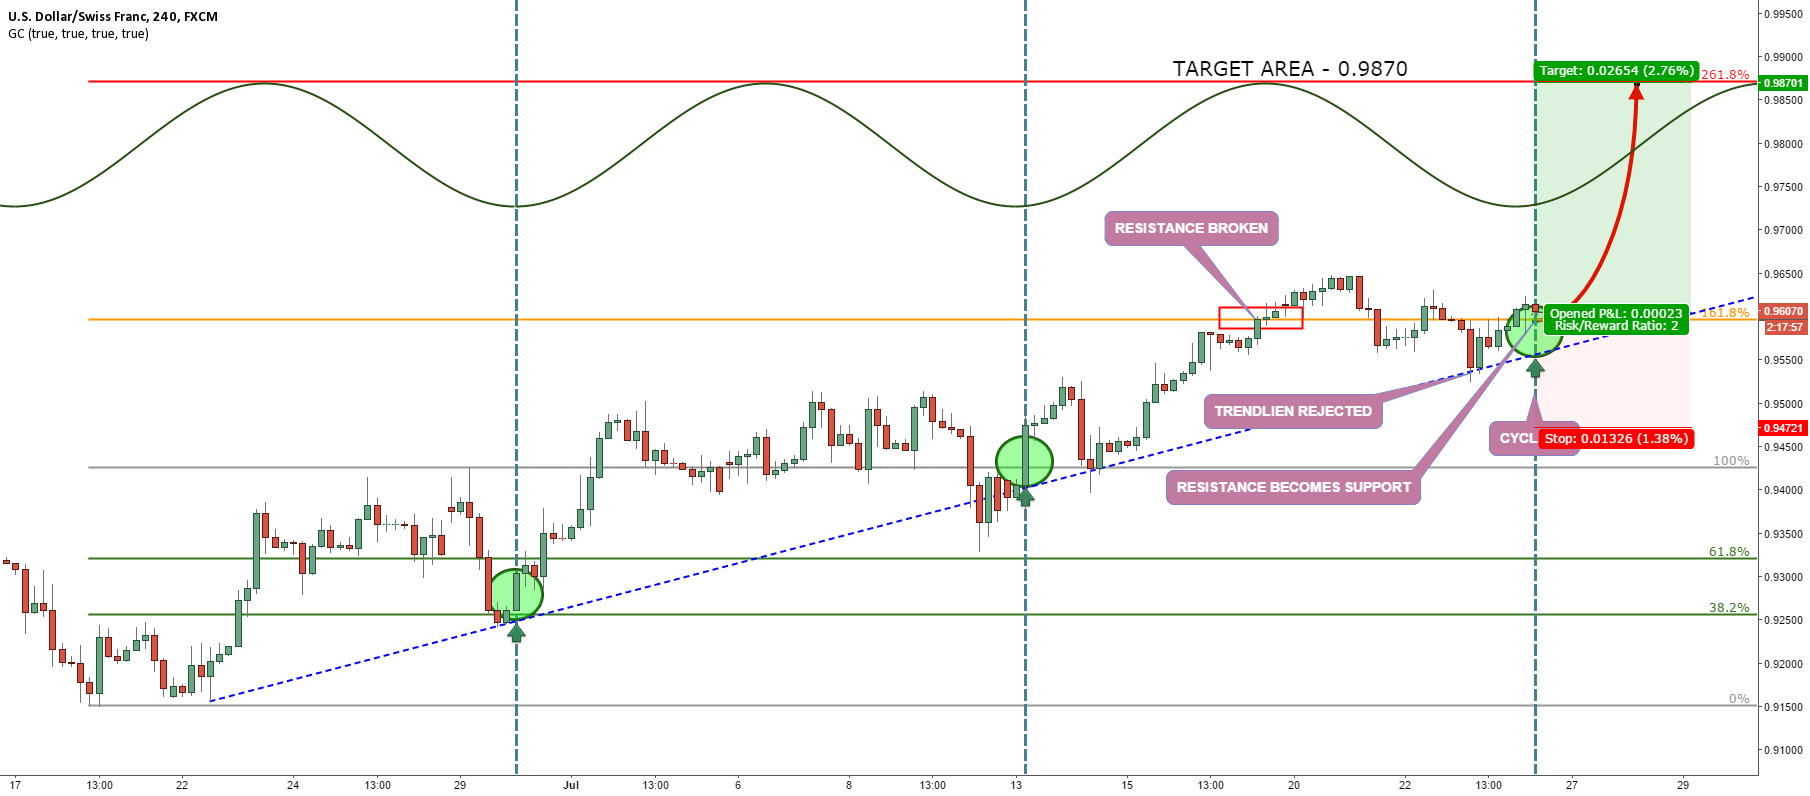 USDCHF CYCLE UP BEGINS